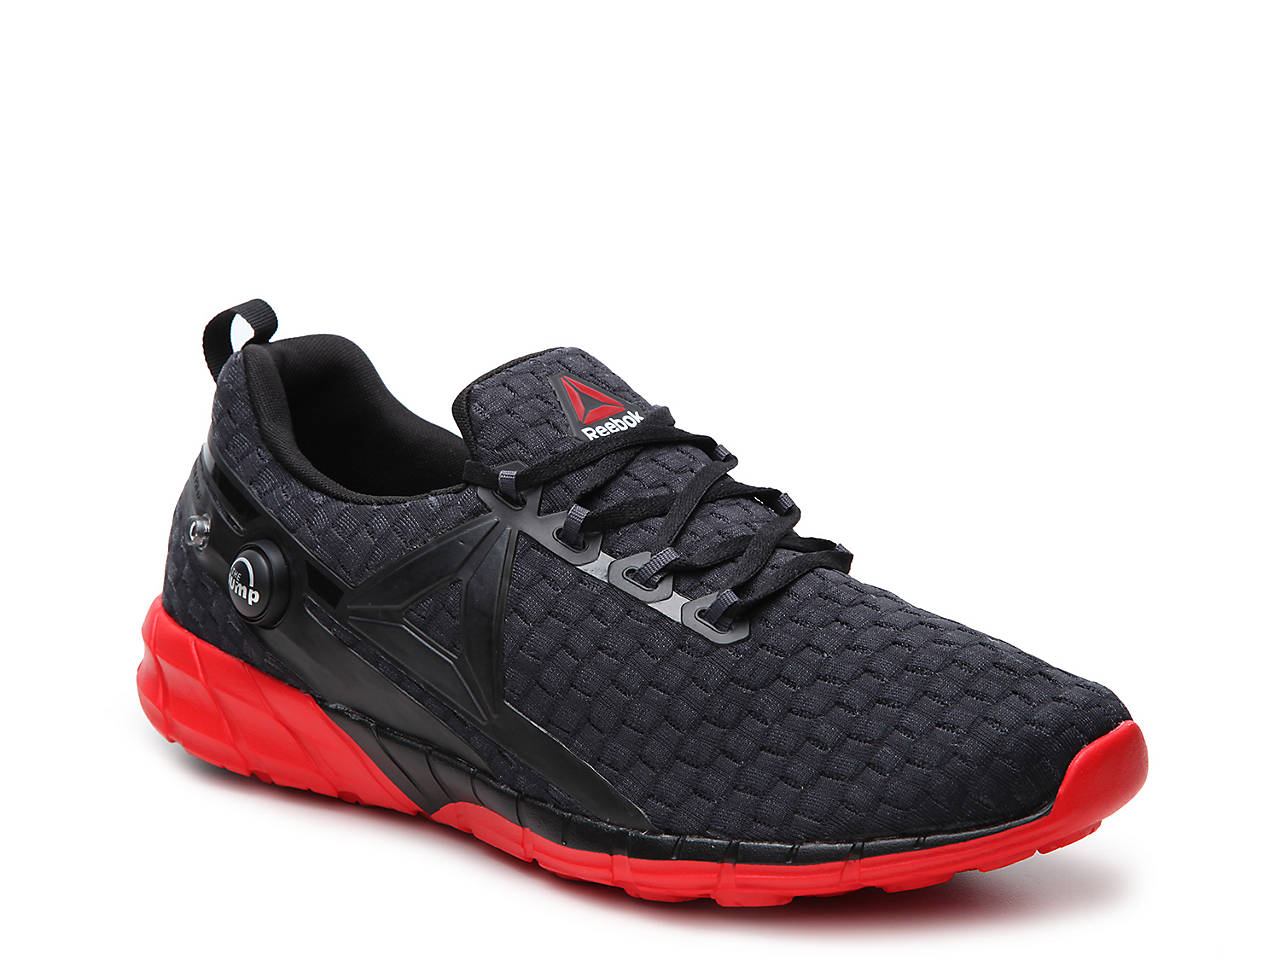 433c613600ea Reebok ZPump Fusion 2.5 Lightweight Running Shoe - Men s Men s Shoes ...